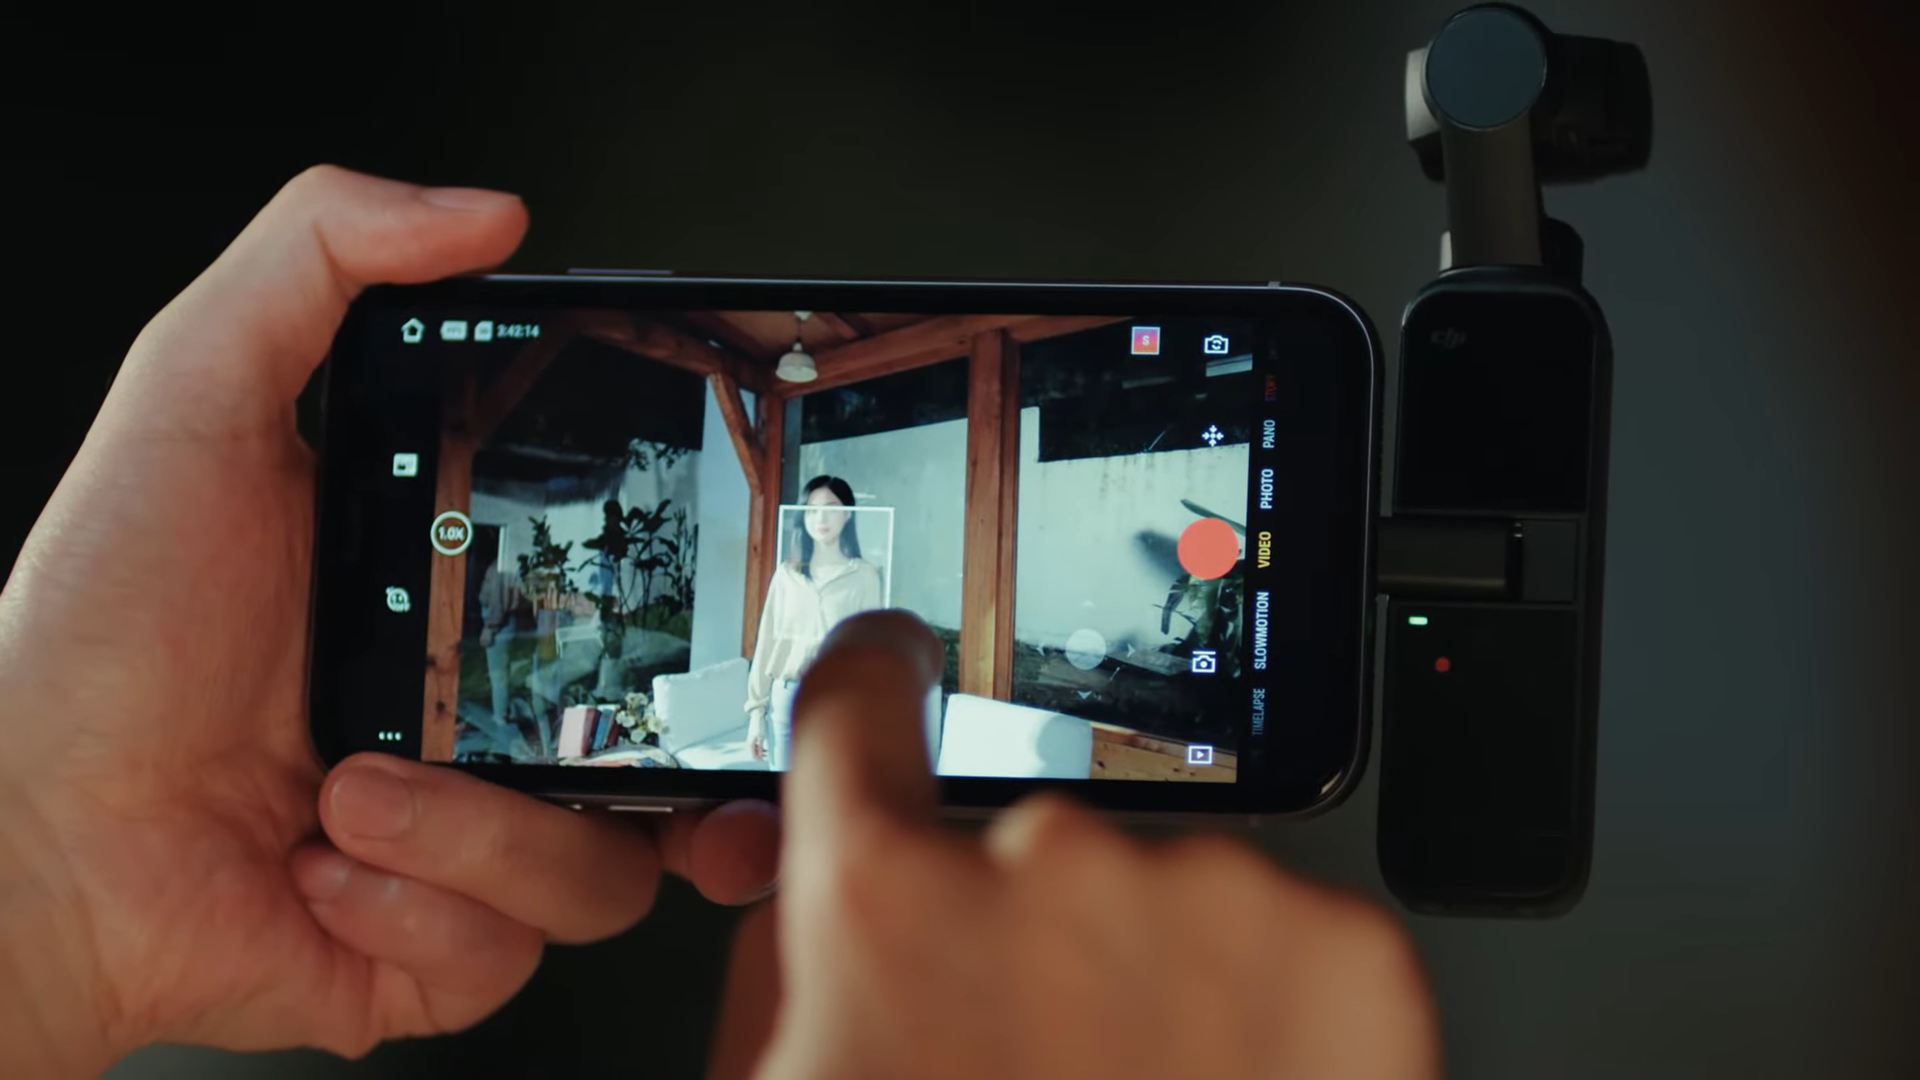 Small enough to slip into your pocket, the DJI Pocket 2 Creator Combo is an intelligent 3-axis gimbal which can be taken anywhere. The Pocket 2 benefits from a larger sensor than the Osmo Pocket, with a 1/1.7″ sensor. It also has a 20mm f/1.8 lens with 93° FOV to enable a bright and wide cinematic look. Creatives have the tools to obtain crisp content, thanks to the Pocket's ability to shoot video at 4k/60fps at 100Mbps and capture 16MP or 64MP images in high-resolution mode. Other highlights include. HDR video has been added to make videos pop with vivid colours. Redeveloped AutoFocus, using Hybrid 2.0 AF. This blend of phase and contrast detection increases speed and accuracy. 8x zoom using 64MP mode, with 4x lossless quality using 1080p/16MP mode.